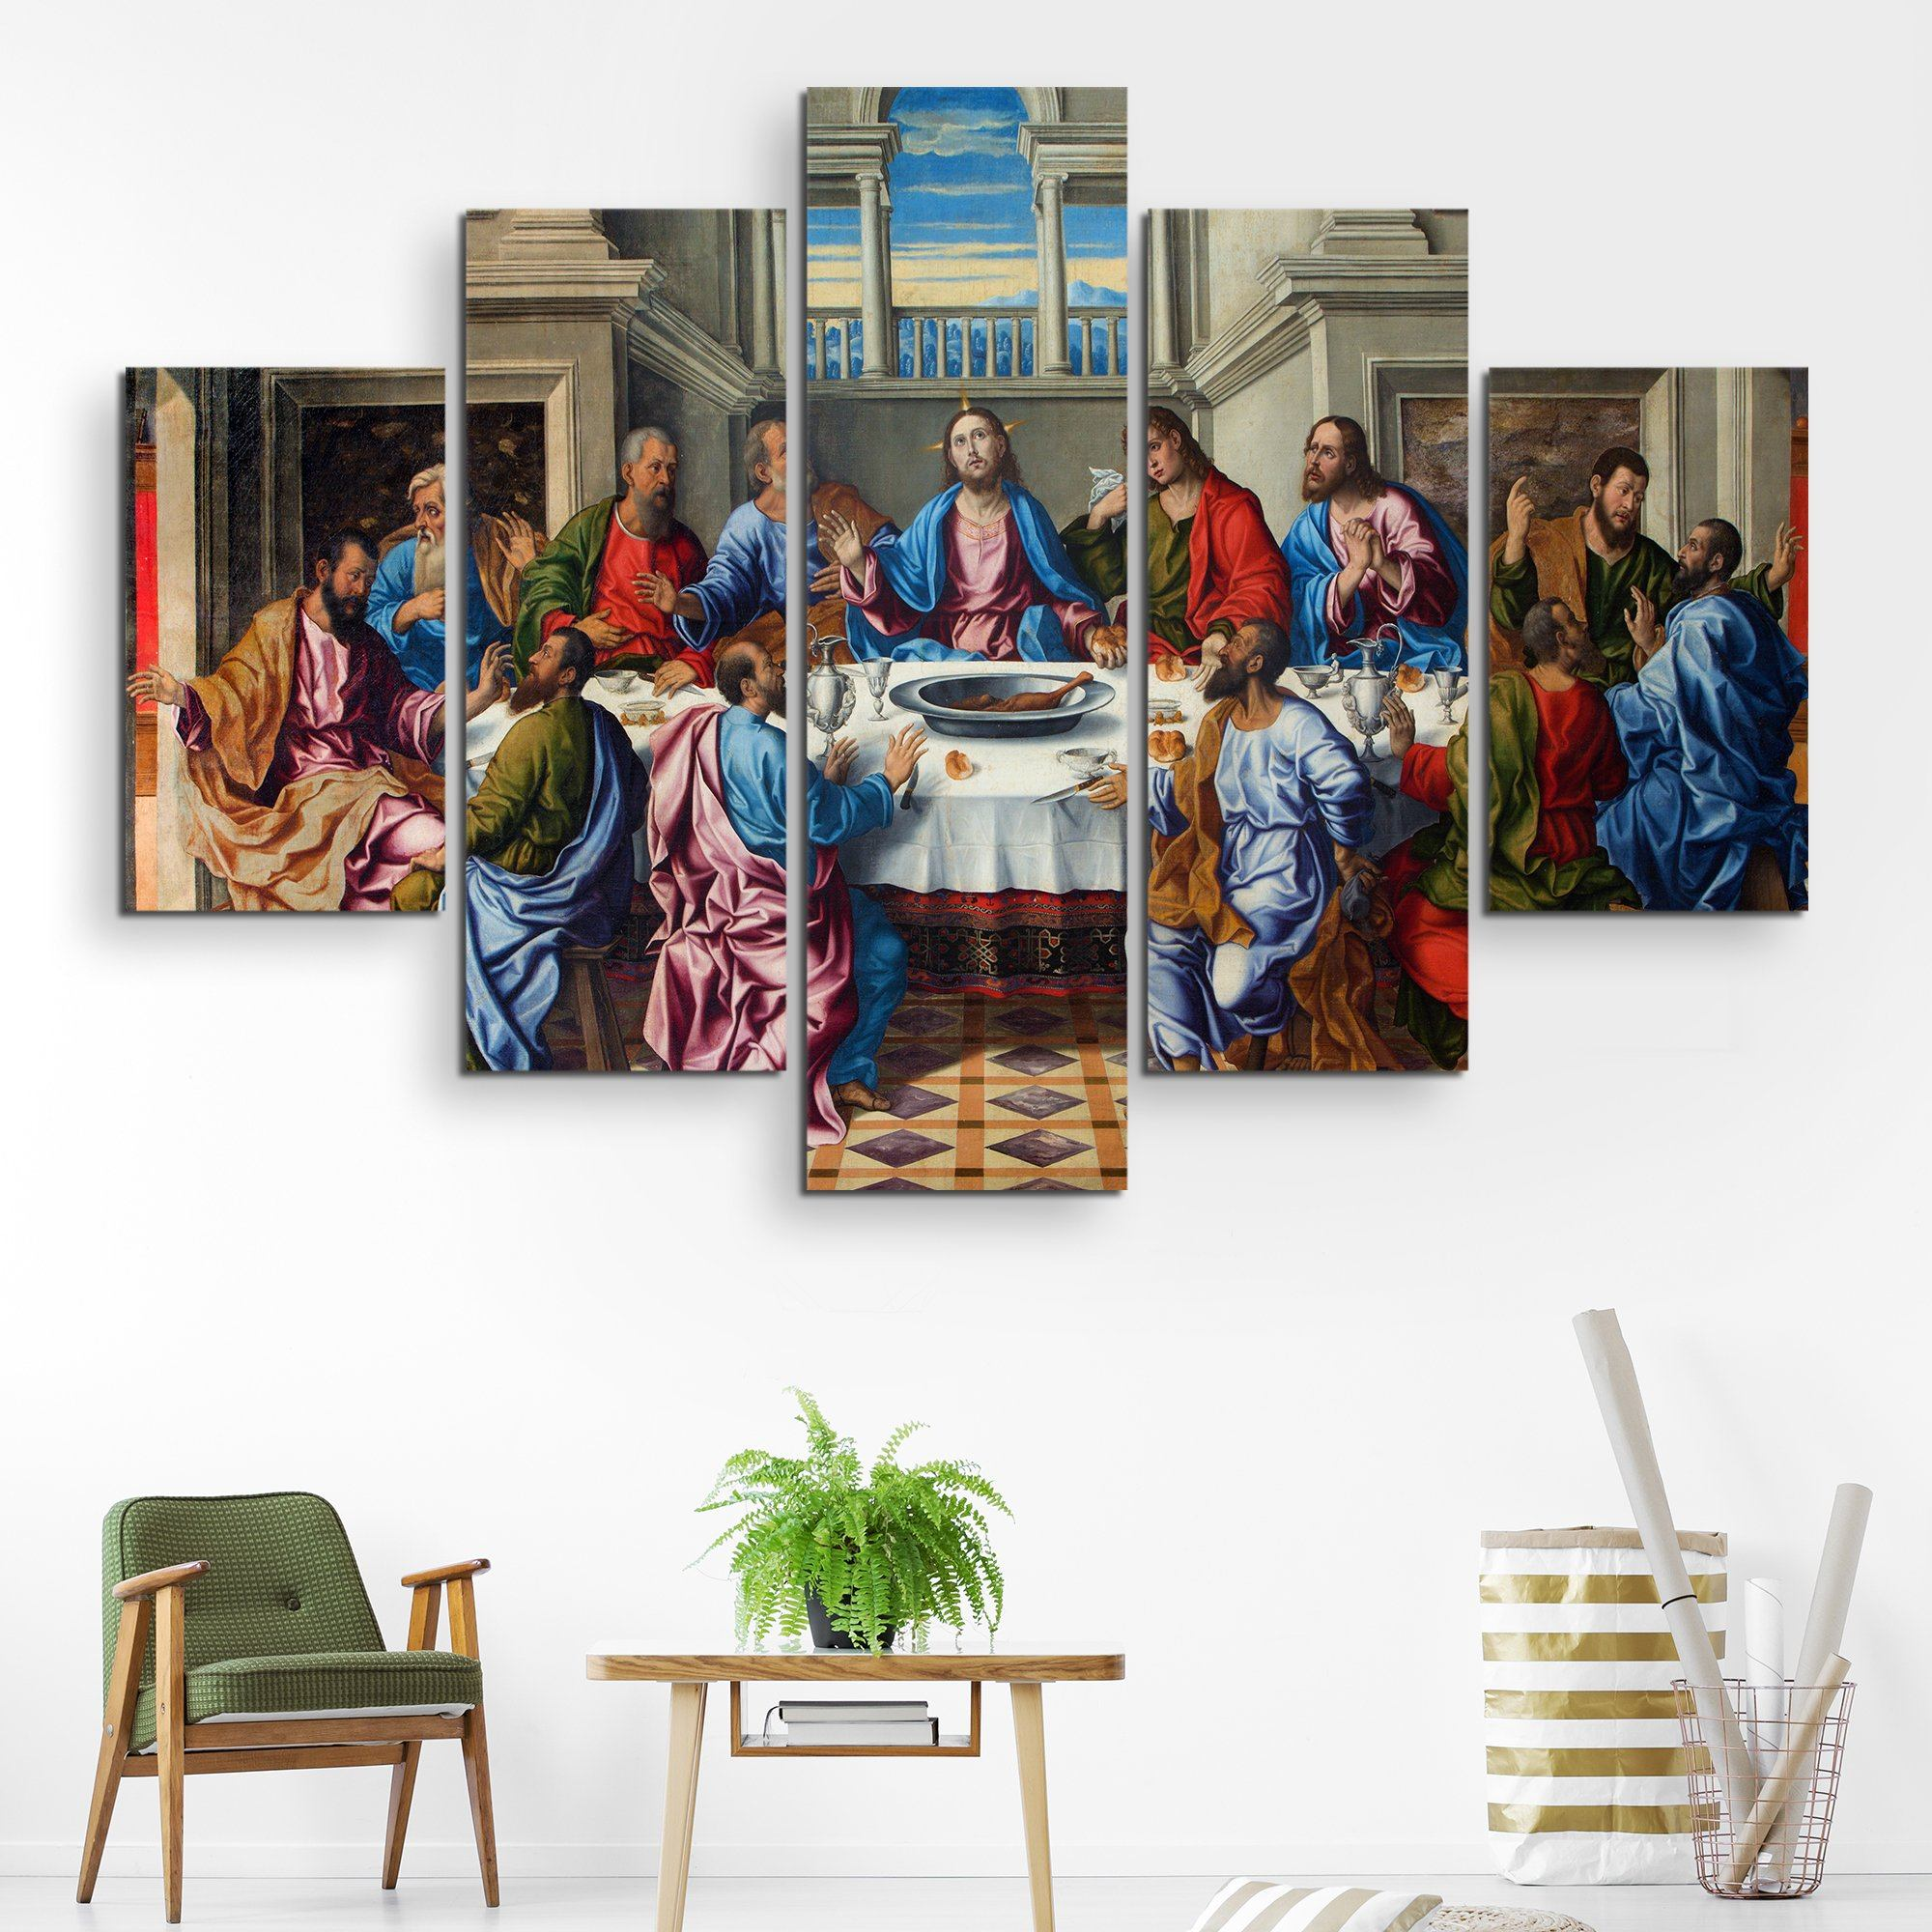 5 piece The Last Supper wall art